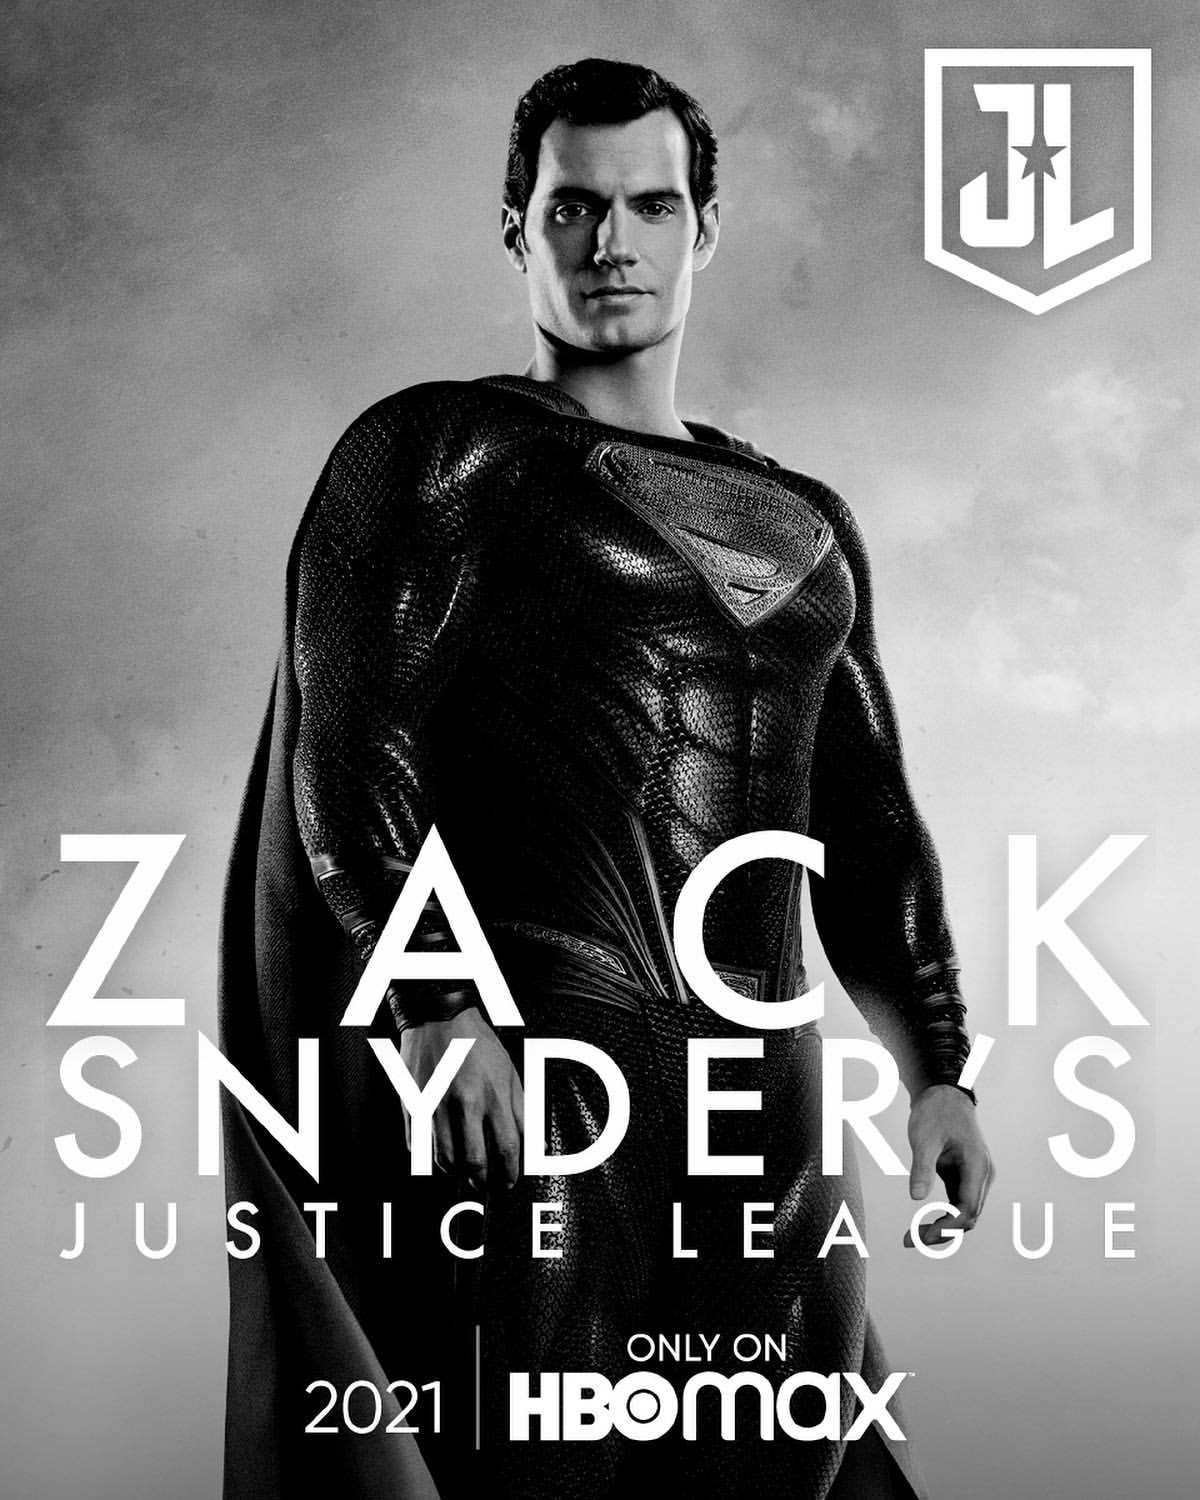 szmk_hbo_justice_league_snydercut_zack_snyder_batman_dc_comics_superman_aquaman_wonder_woman_cyborg_darkseid_3.jpg